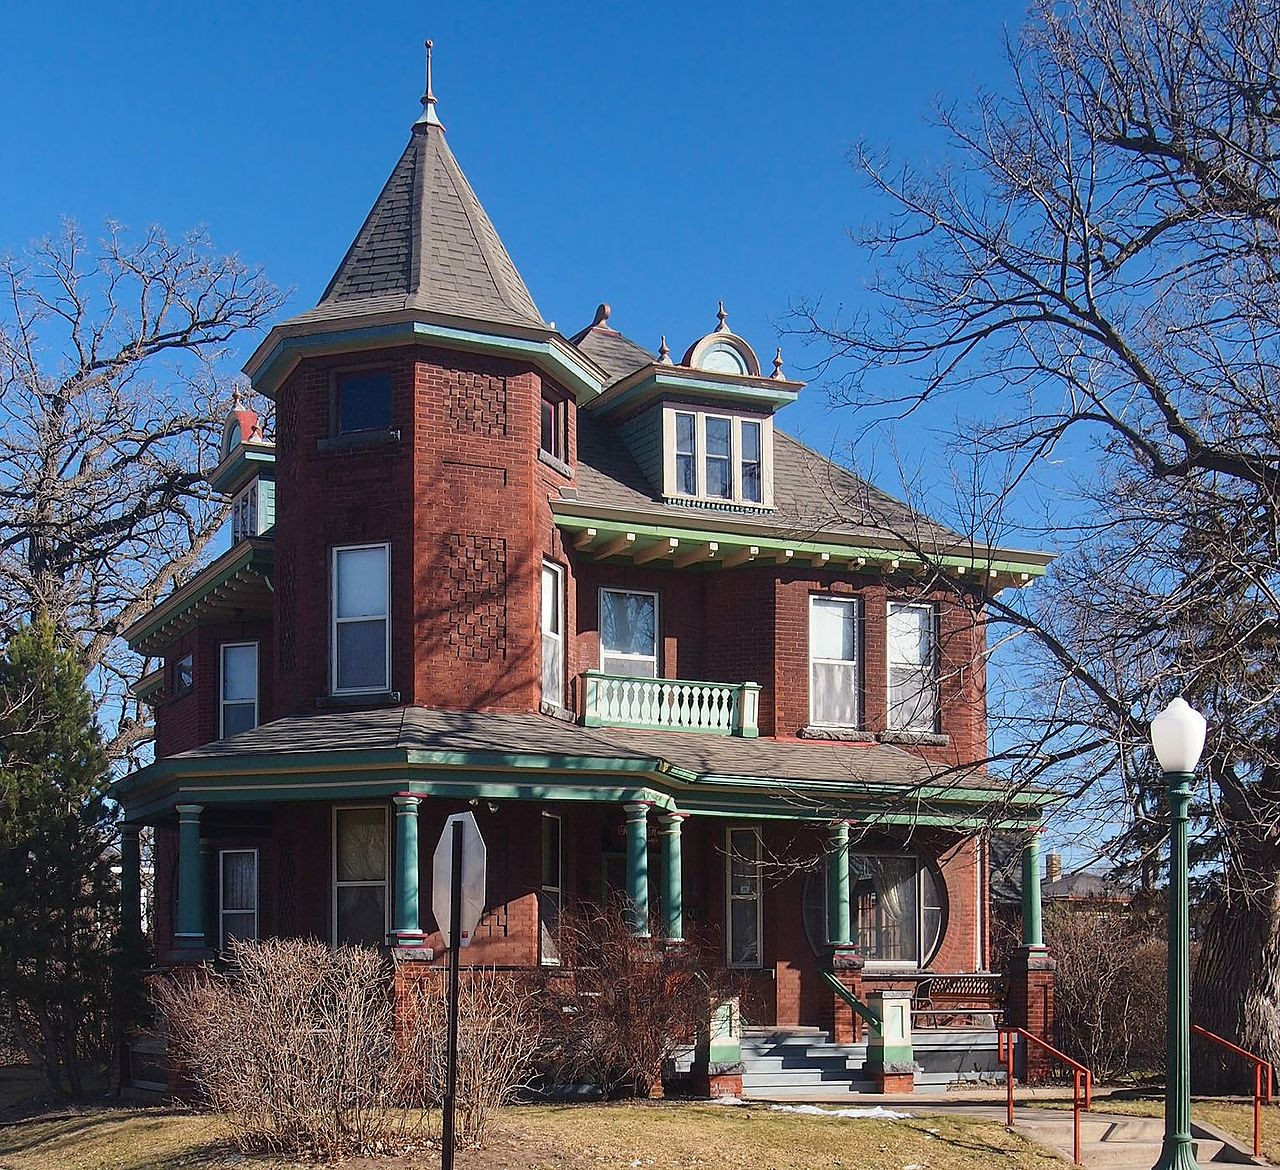 The John N. Bensen House was erected in 1903 and is an excellent example of Queen Anne architecture